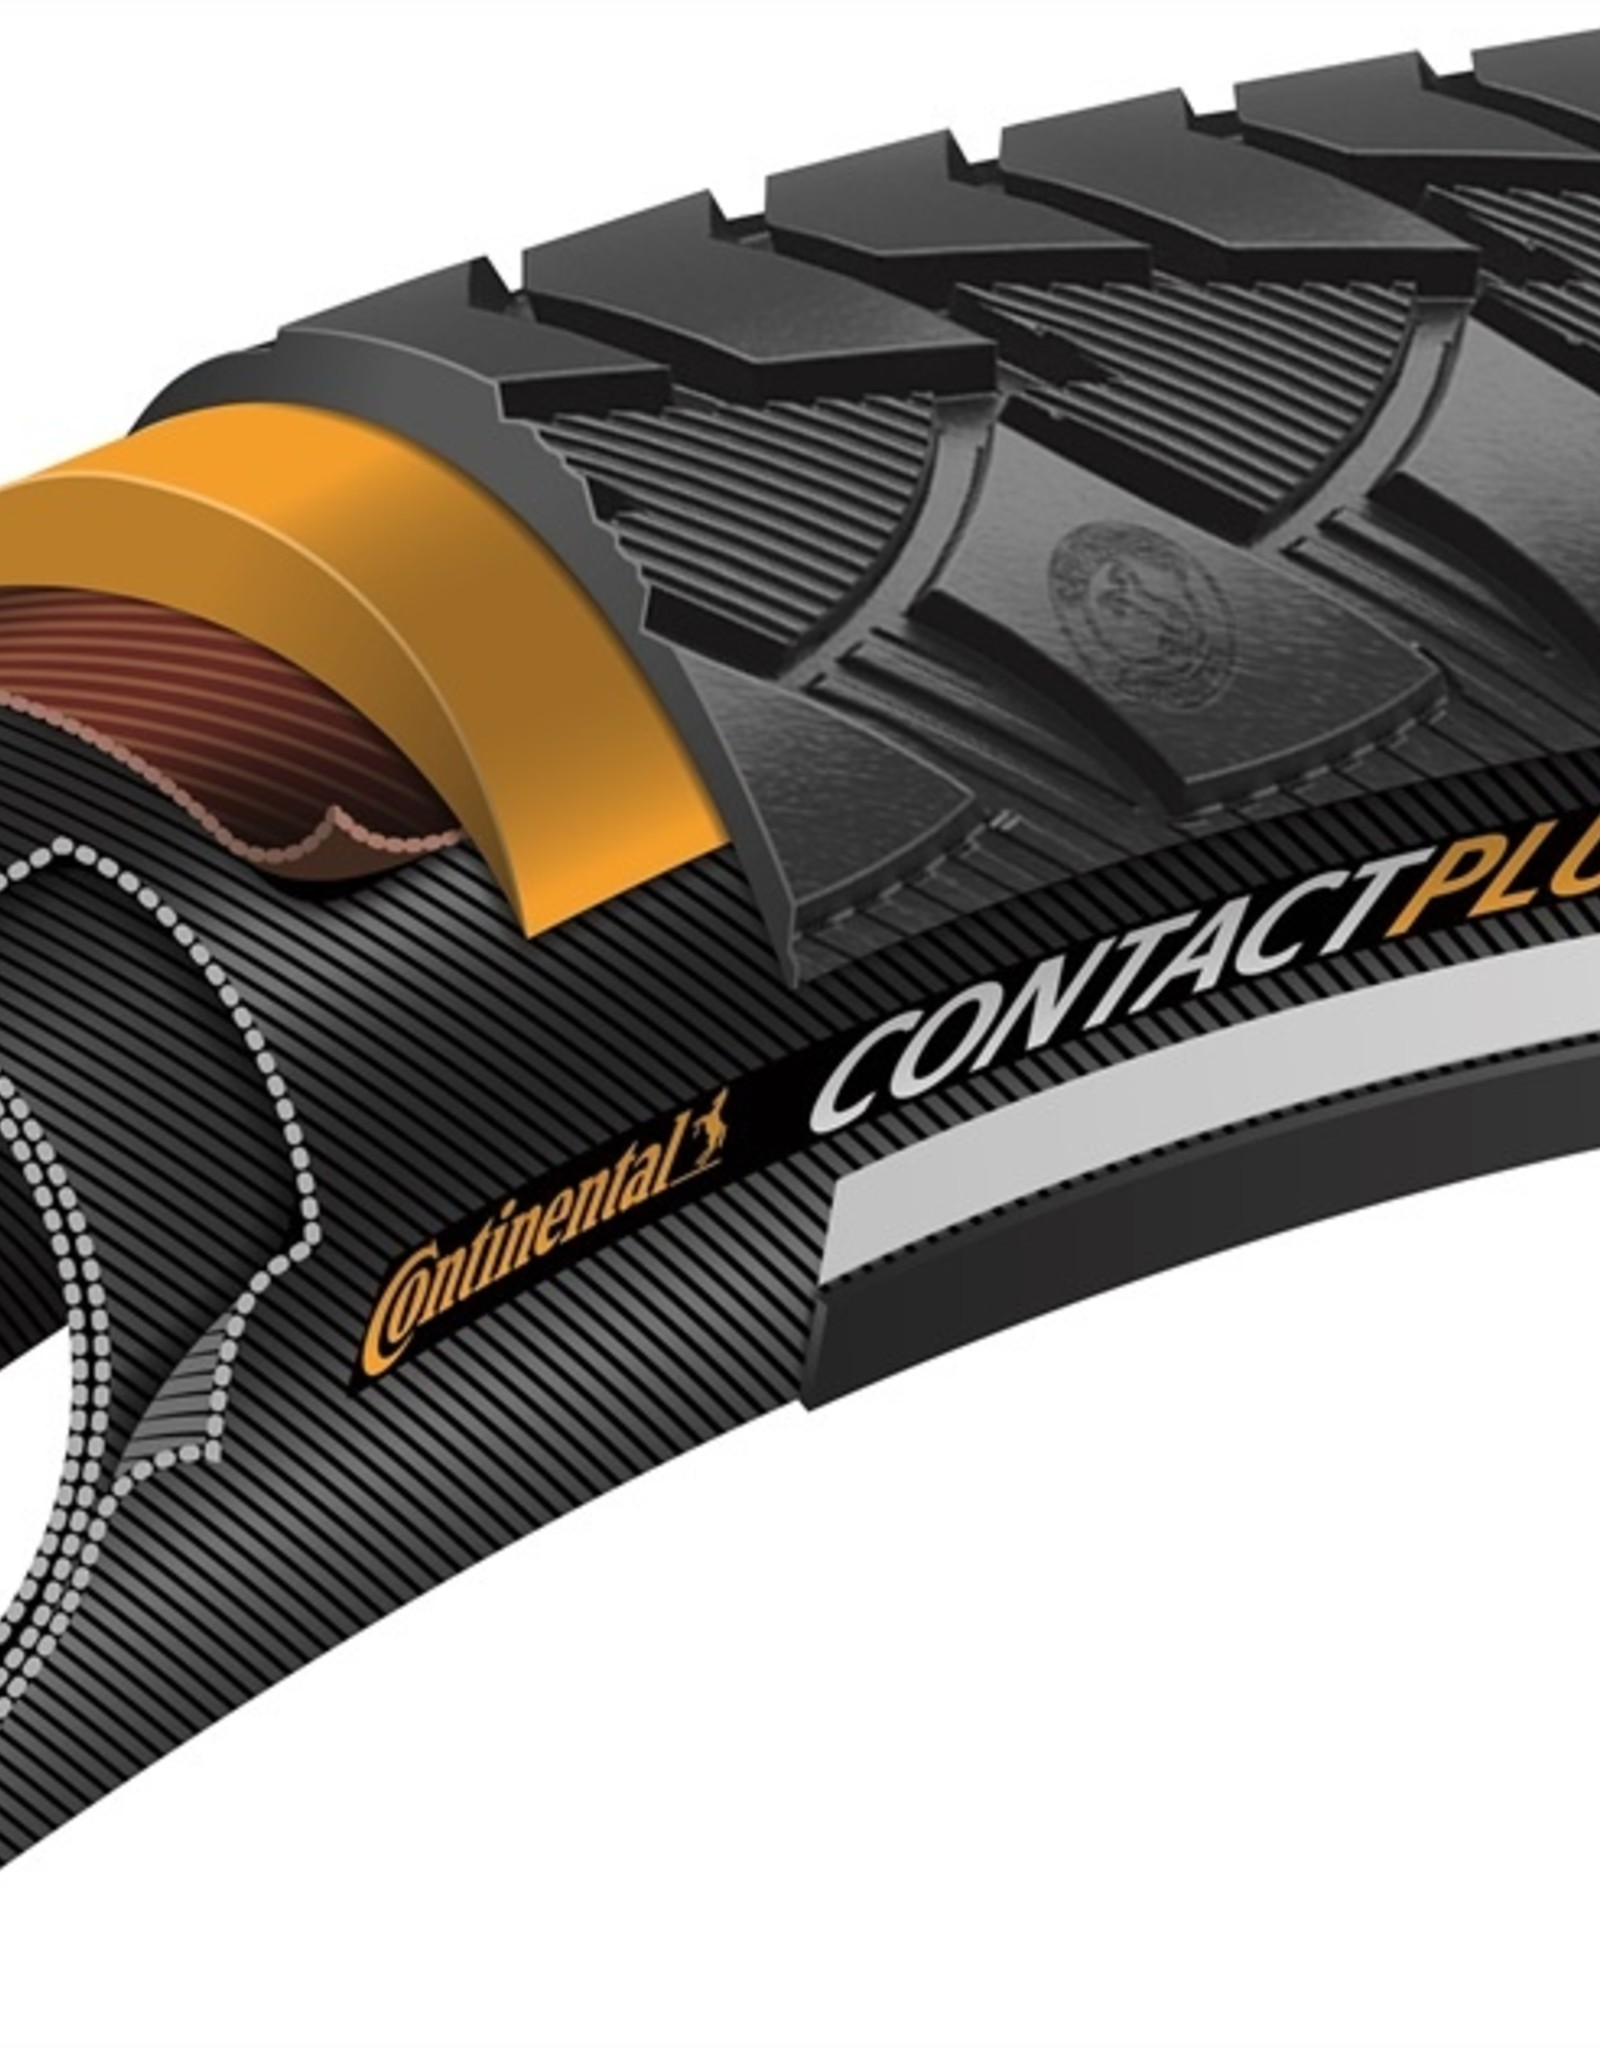 Continental Continental Contact Plus 700 X 32 Reflex